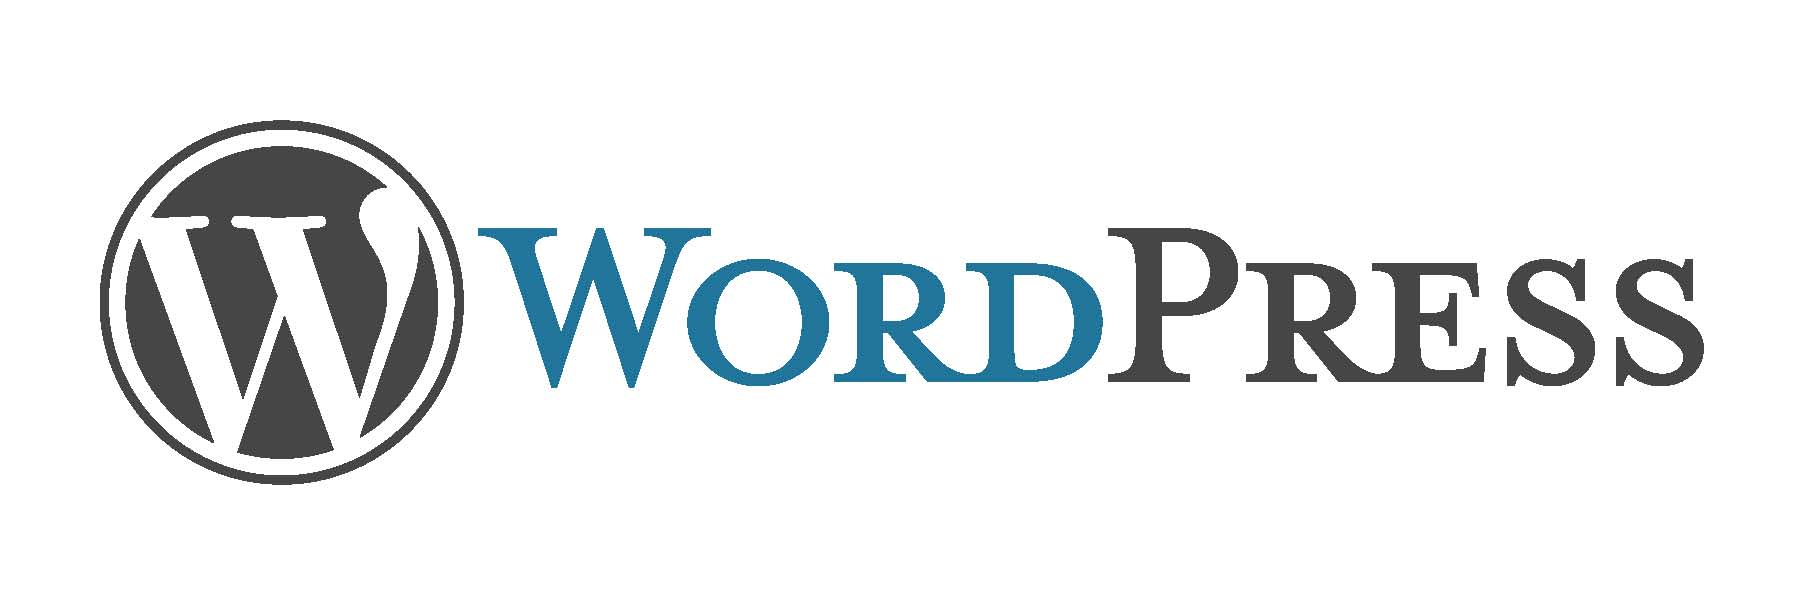 word_press_logo